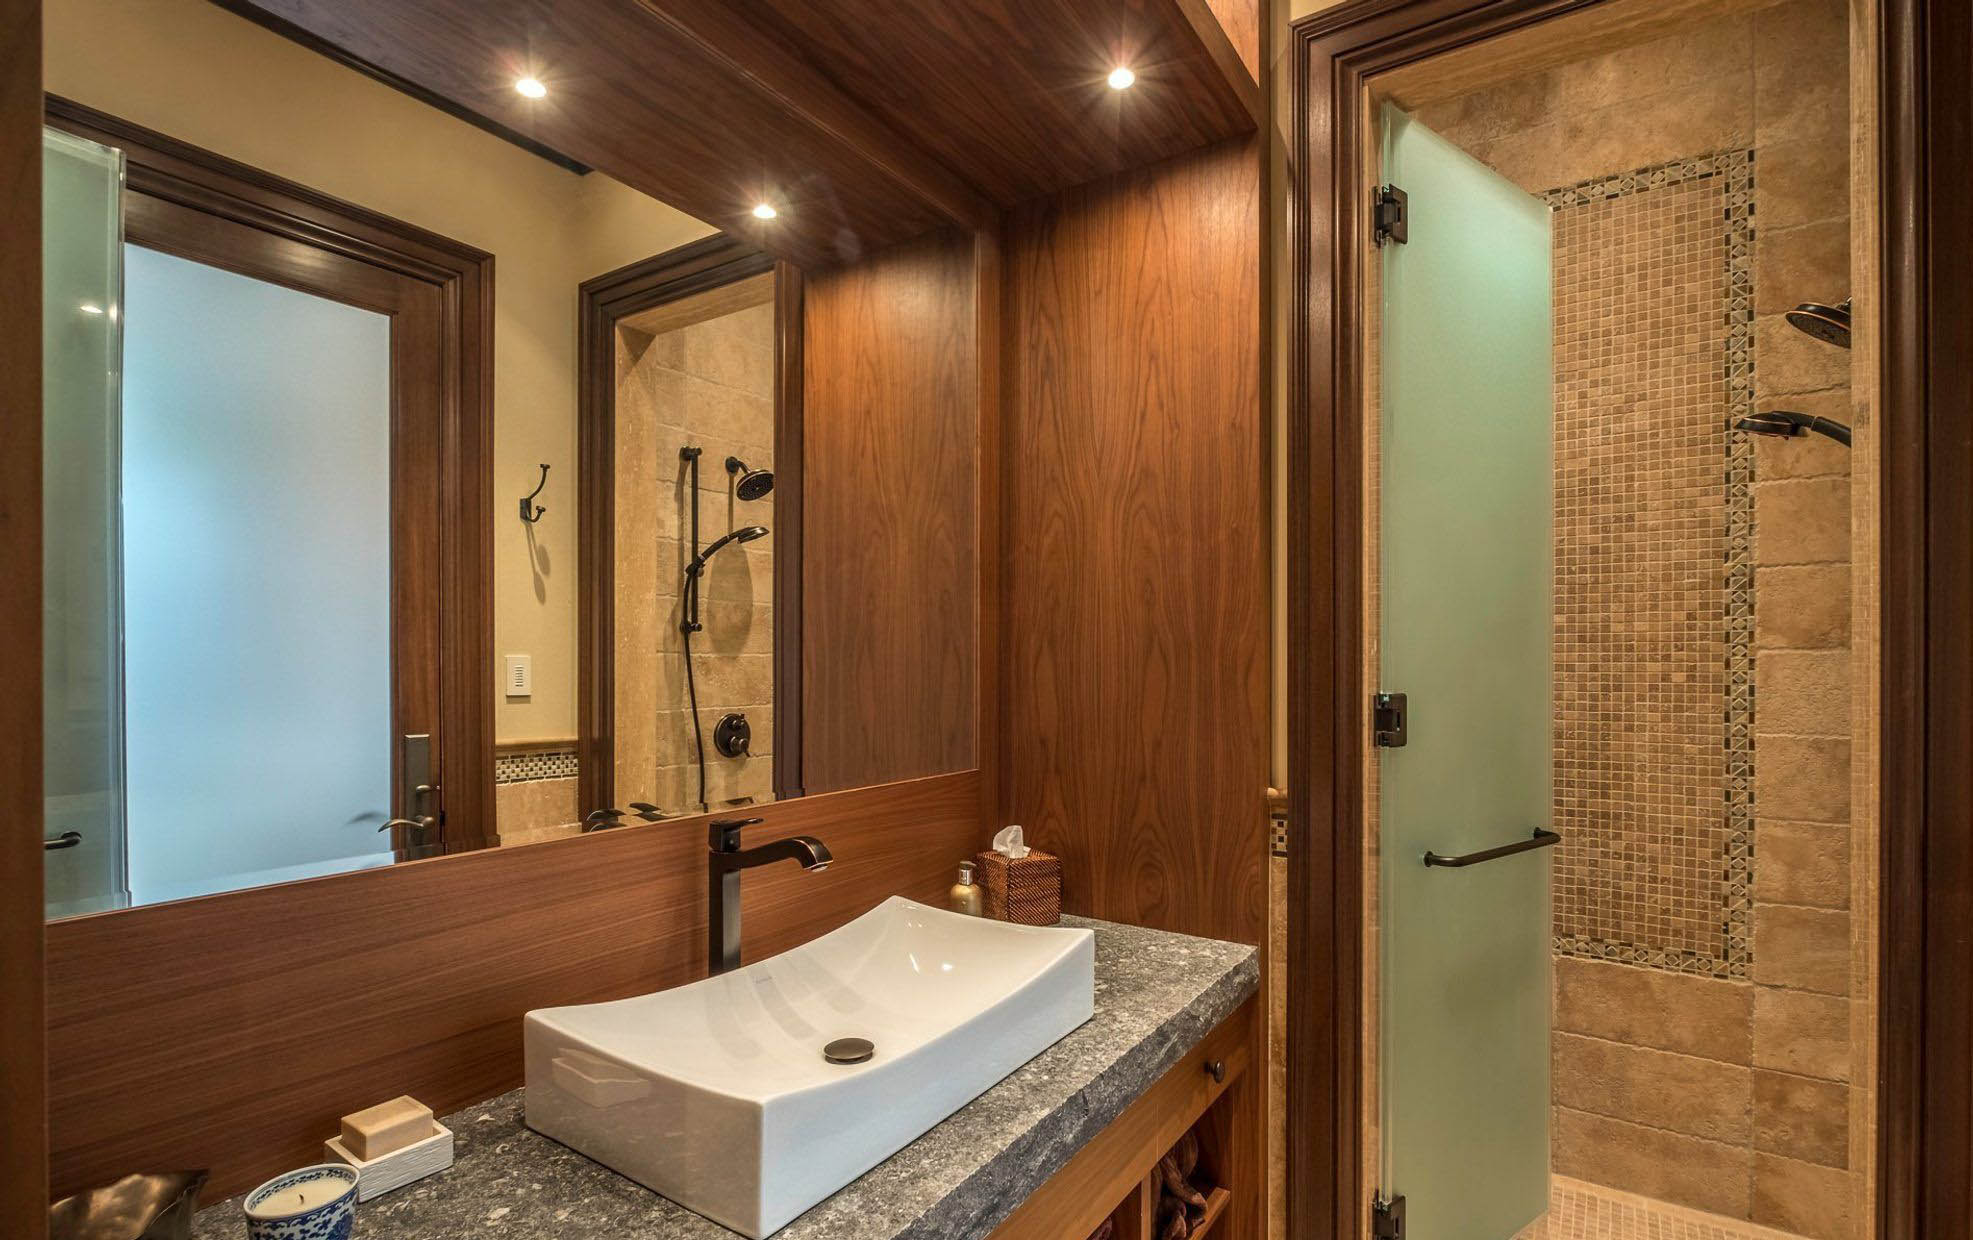 Master bathroom with exquisite wood wall paneling stained a rich medium brown with wood backsplash.